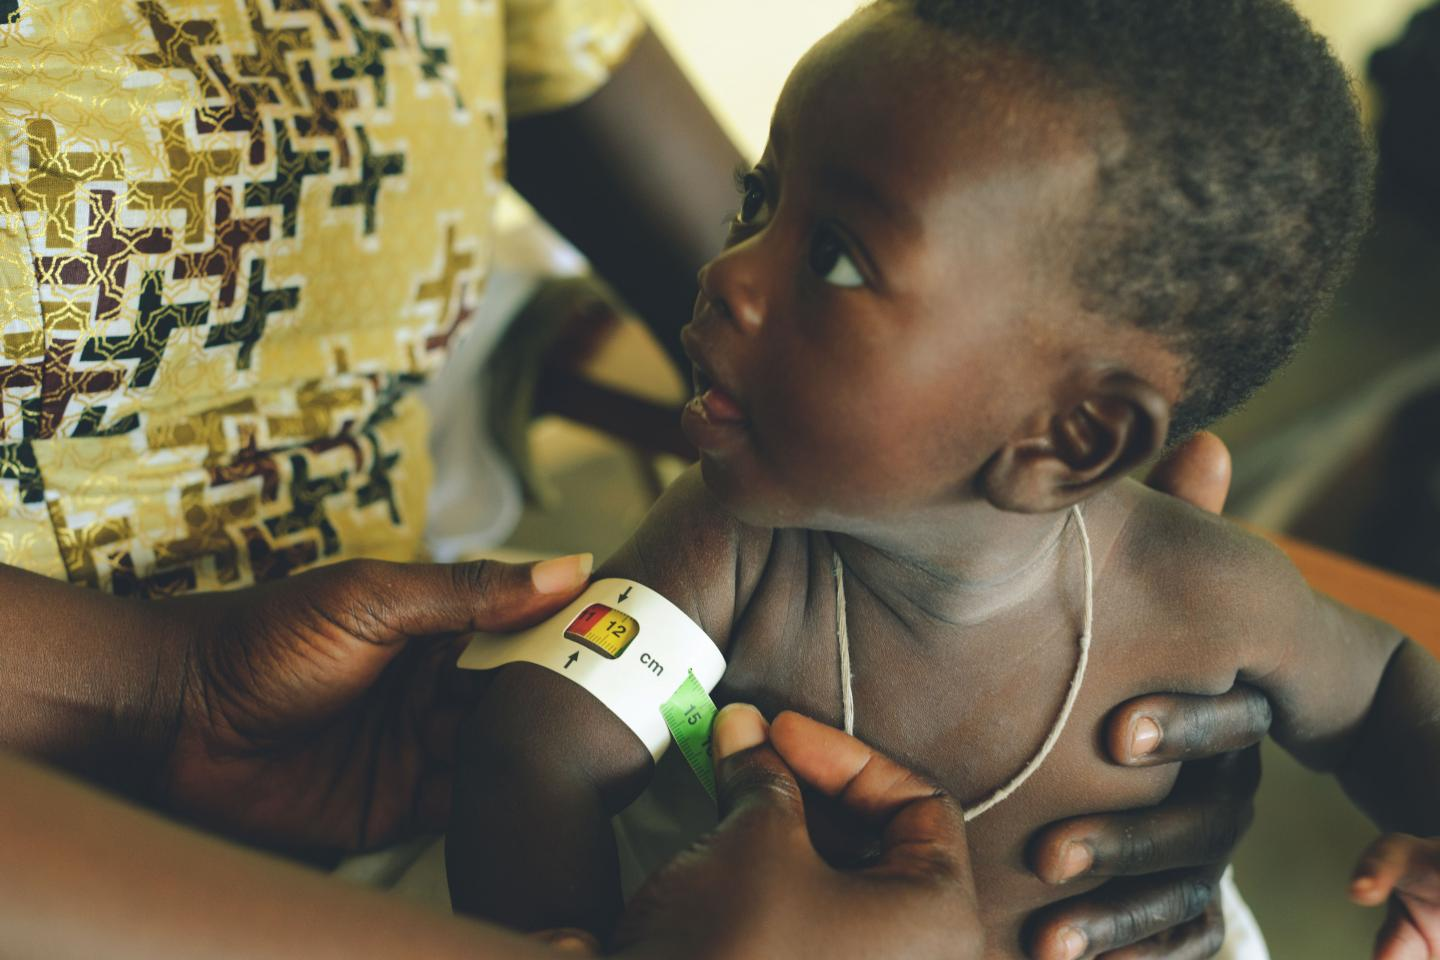 Child is being measured for malnutrition using a Mid Upper Arm Circumference band